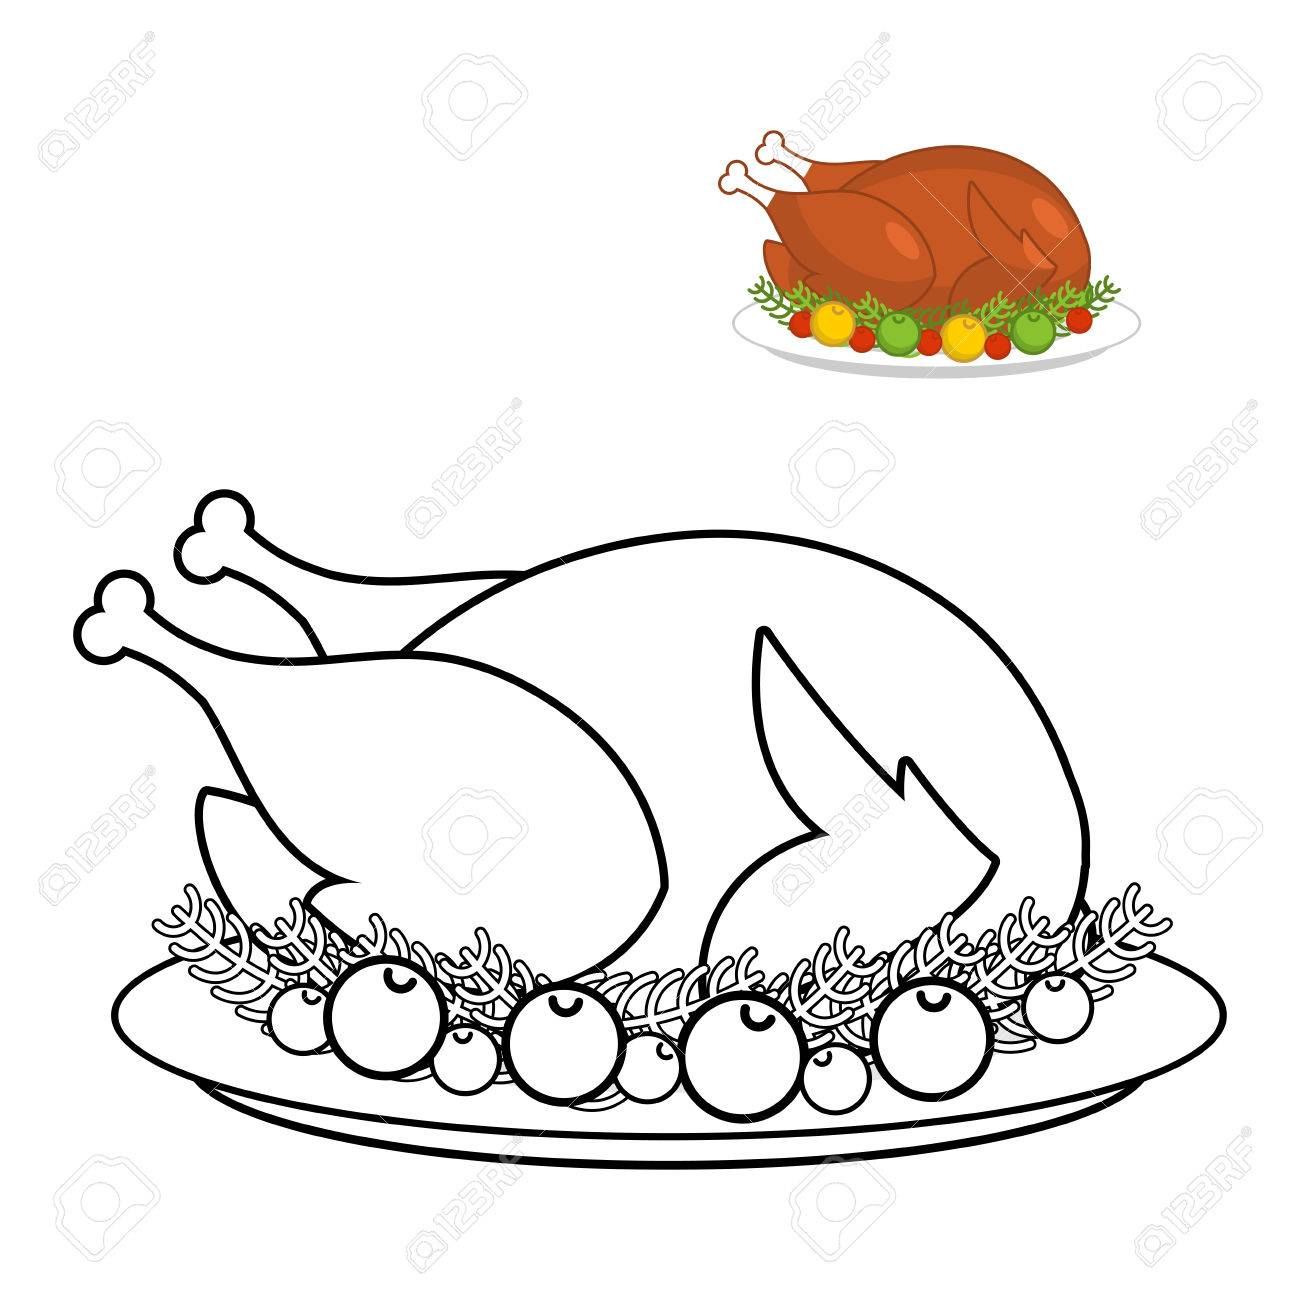 roast turkey for thanksgiving coloring book fowl on plate in